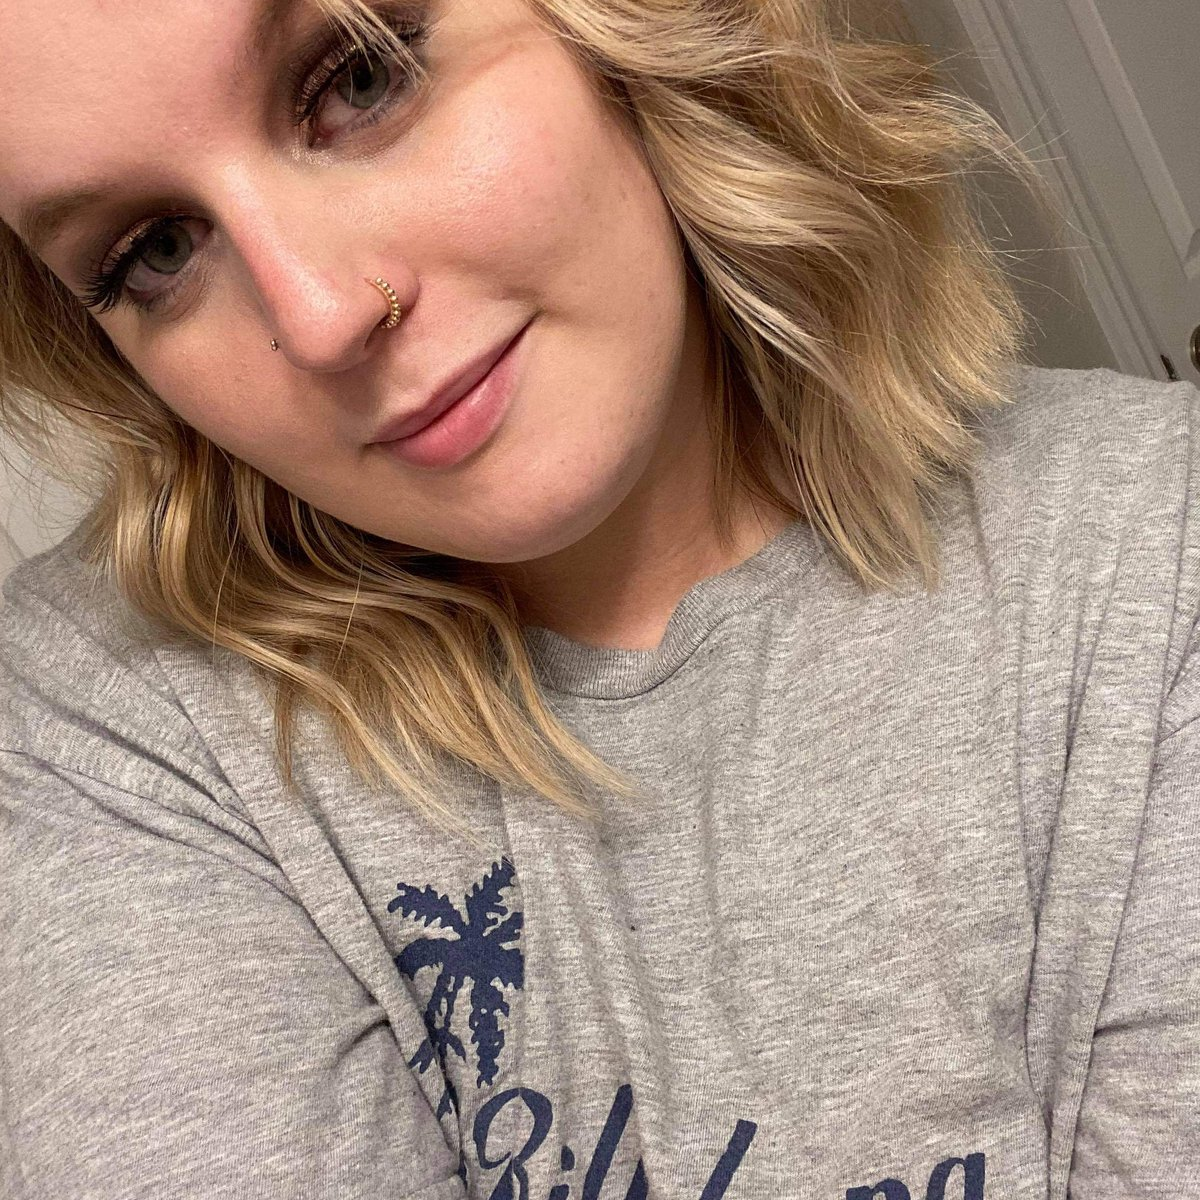 Tried out a little bit curling my hair!   #Covid_19 #sundayvibes #ESPNPlus